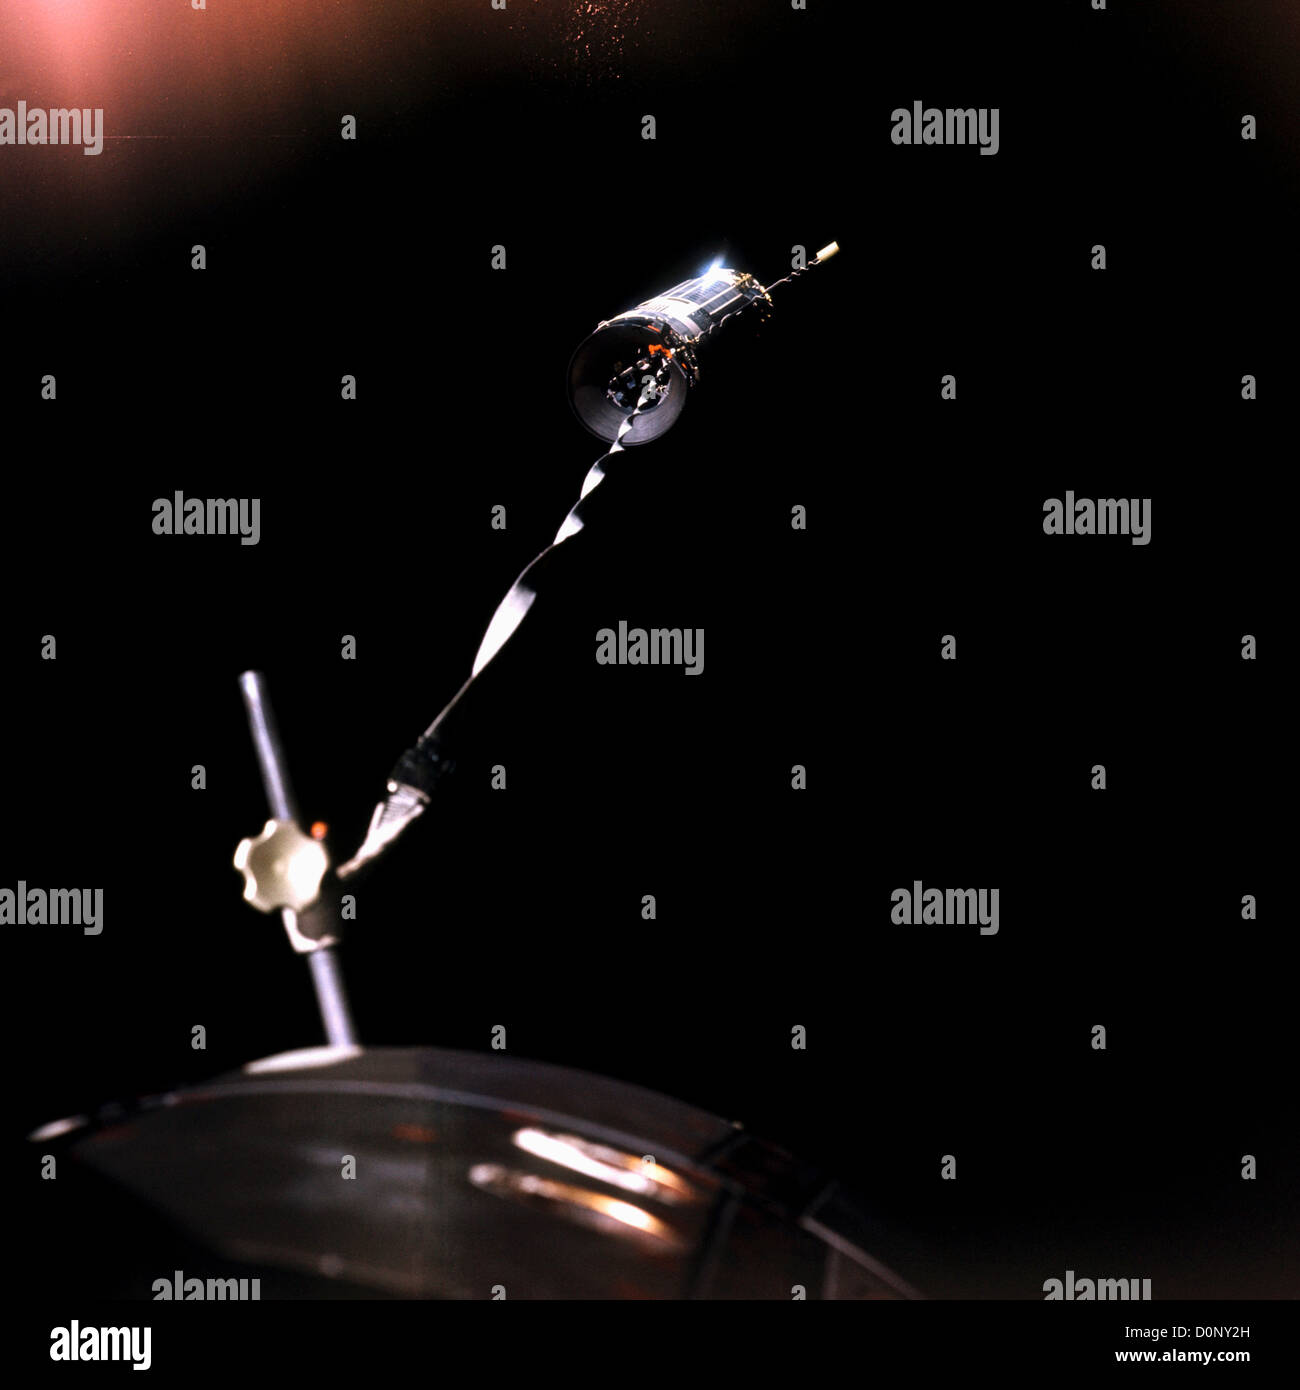 Agena Rocket Tethered to Gemini 12 - Stock Image